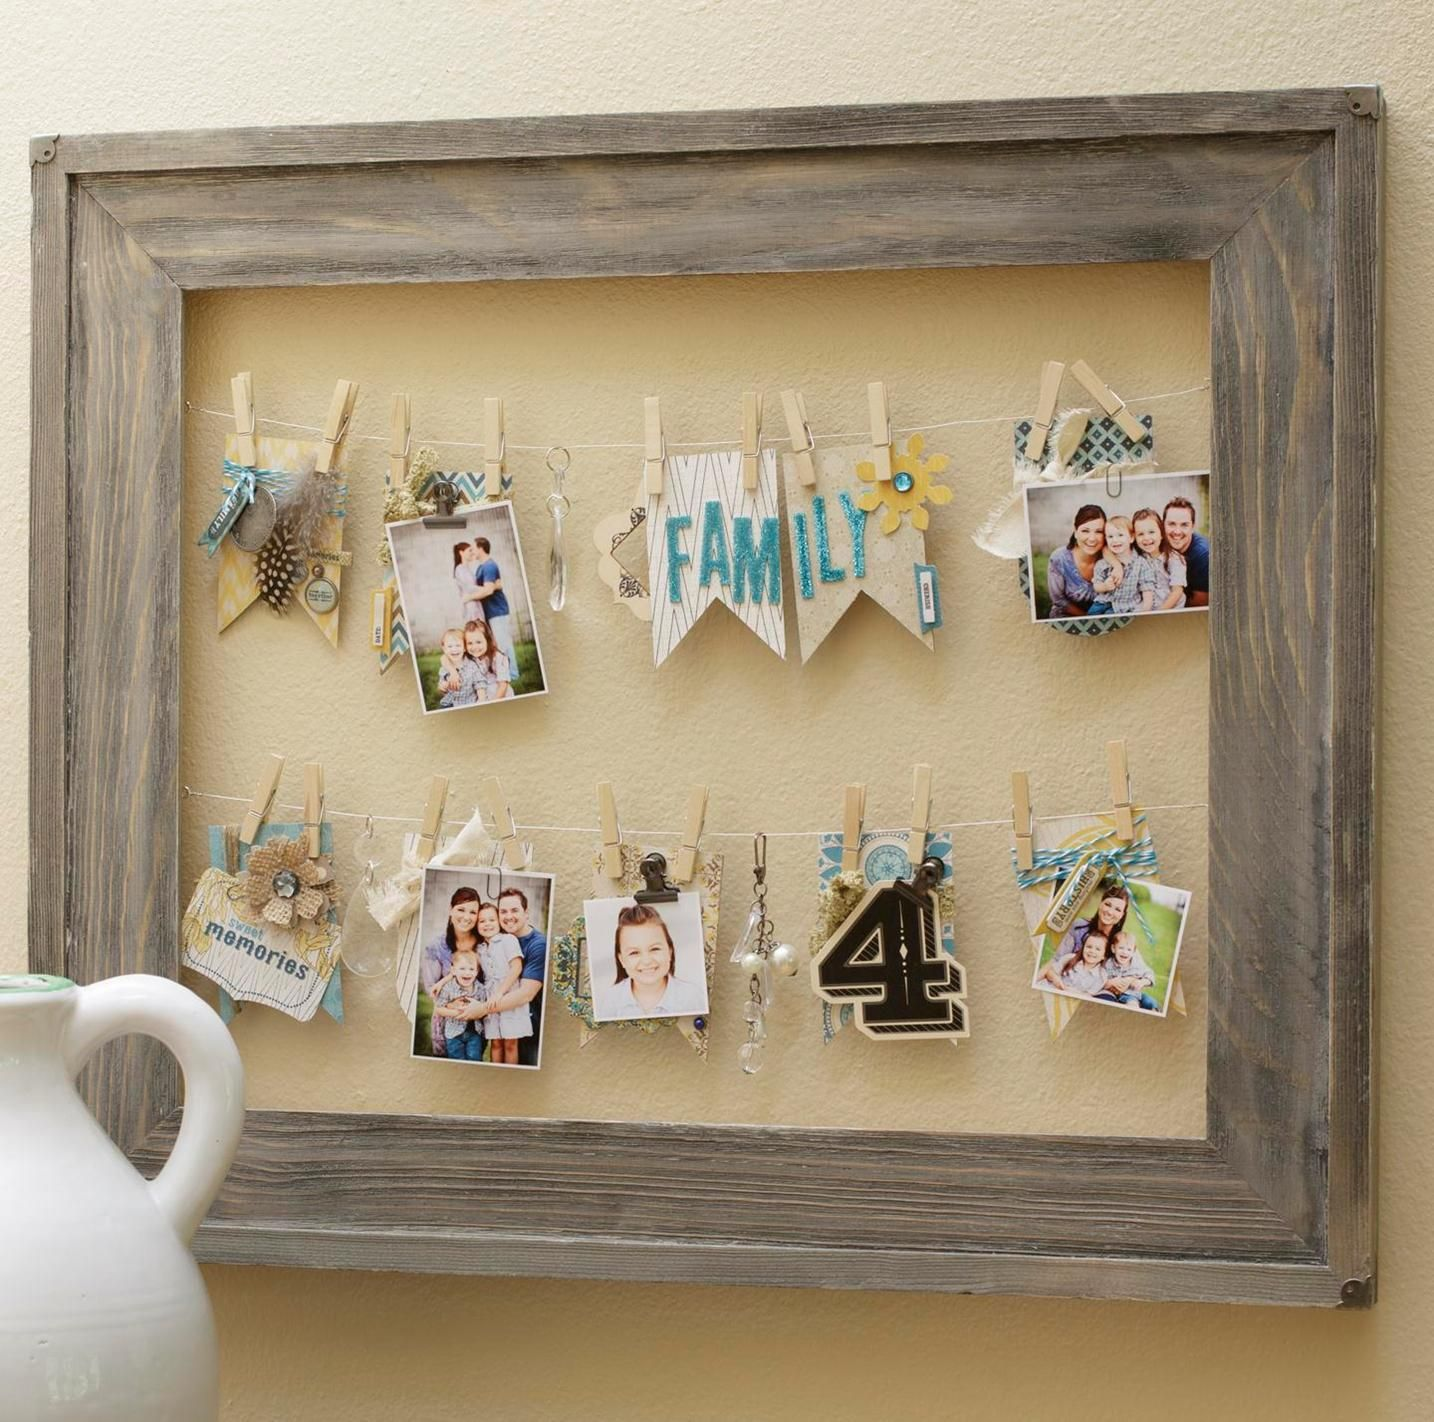 Barnwood Frame Home Decor Created by Sarah Owens Inspired by Jess